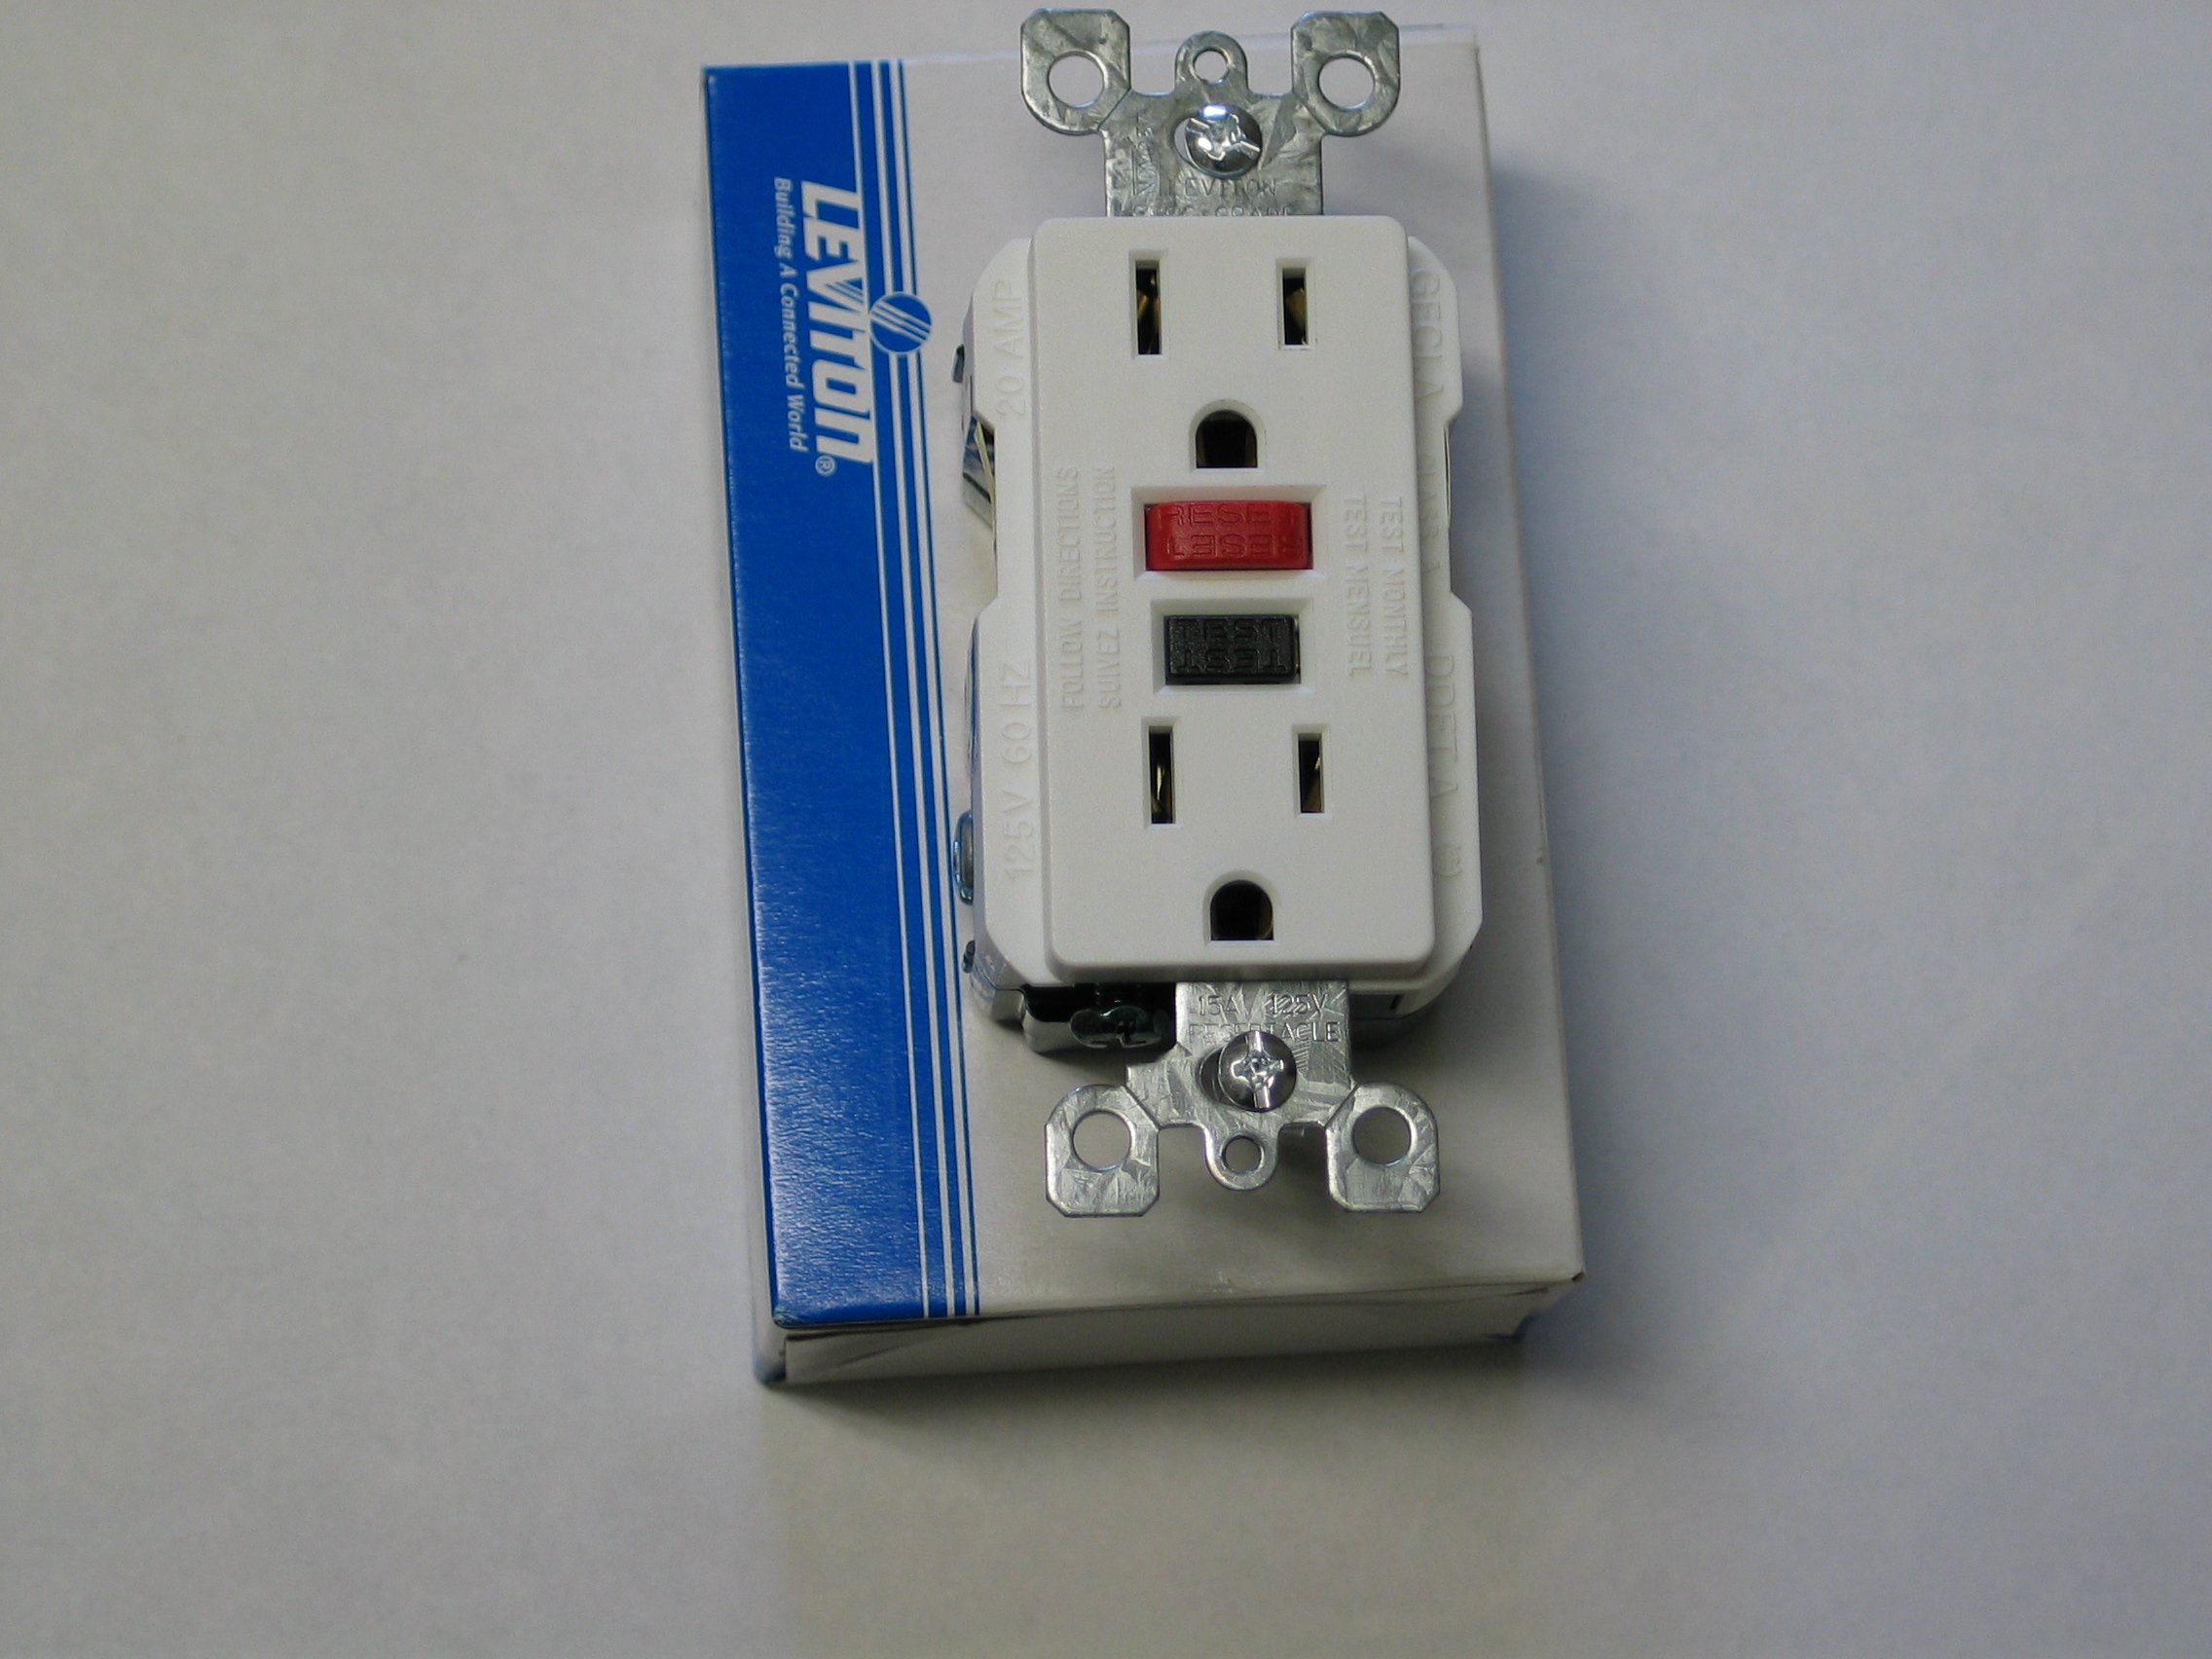 problems a tripping gfci on an rv electrical online a given that the gfci will reset once dried out it is most likely that you have water leaking into one of the outlets check your rv manual to determine